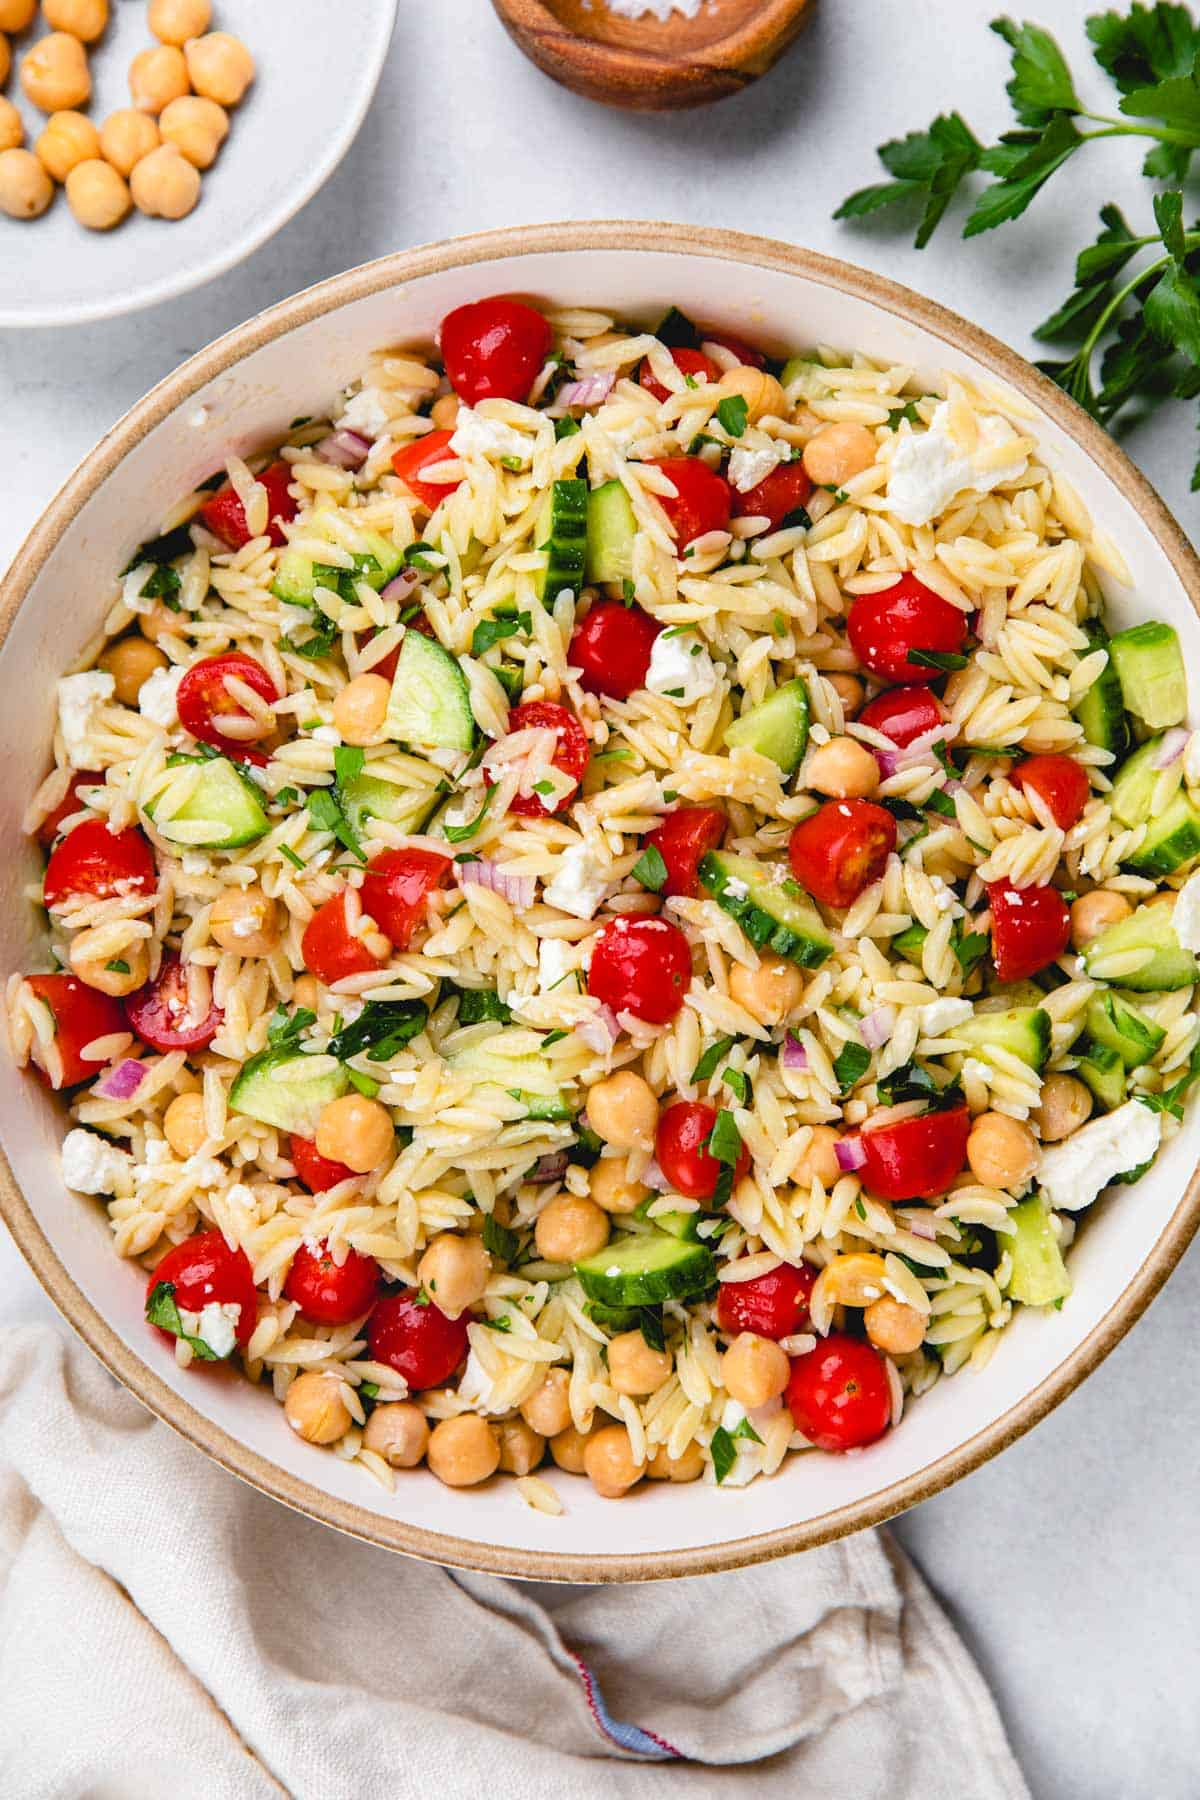 Salad with orzo, cucumbers, cherry tomatoes in a large bowl.